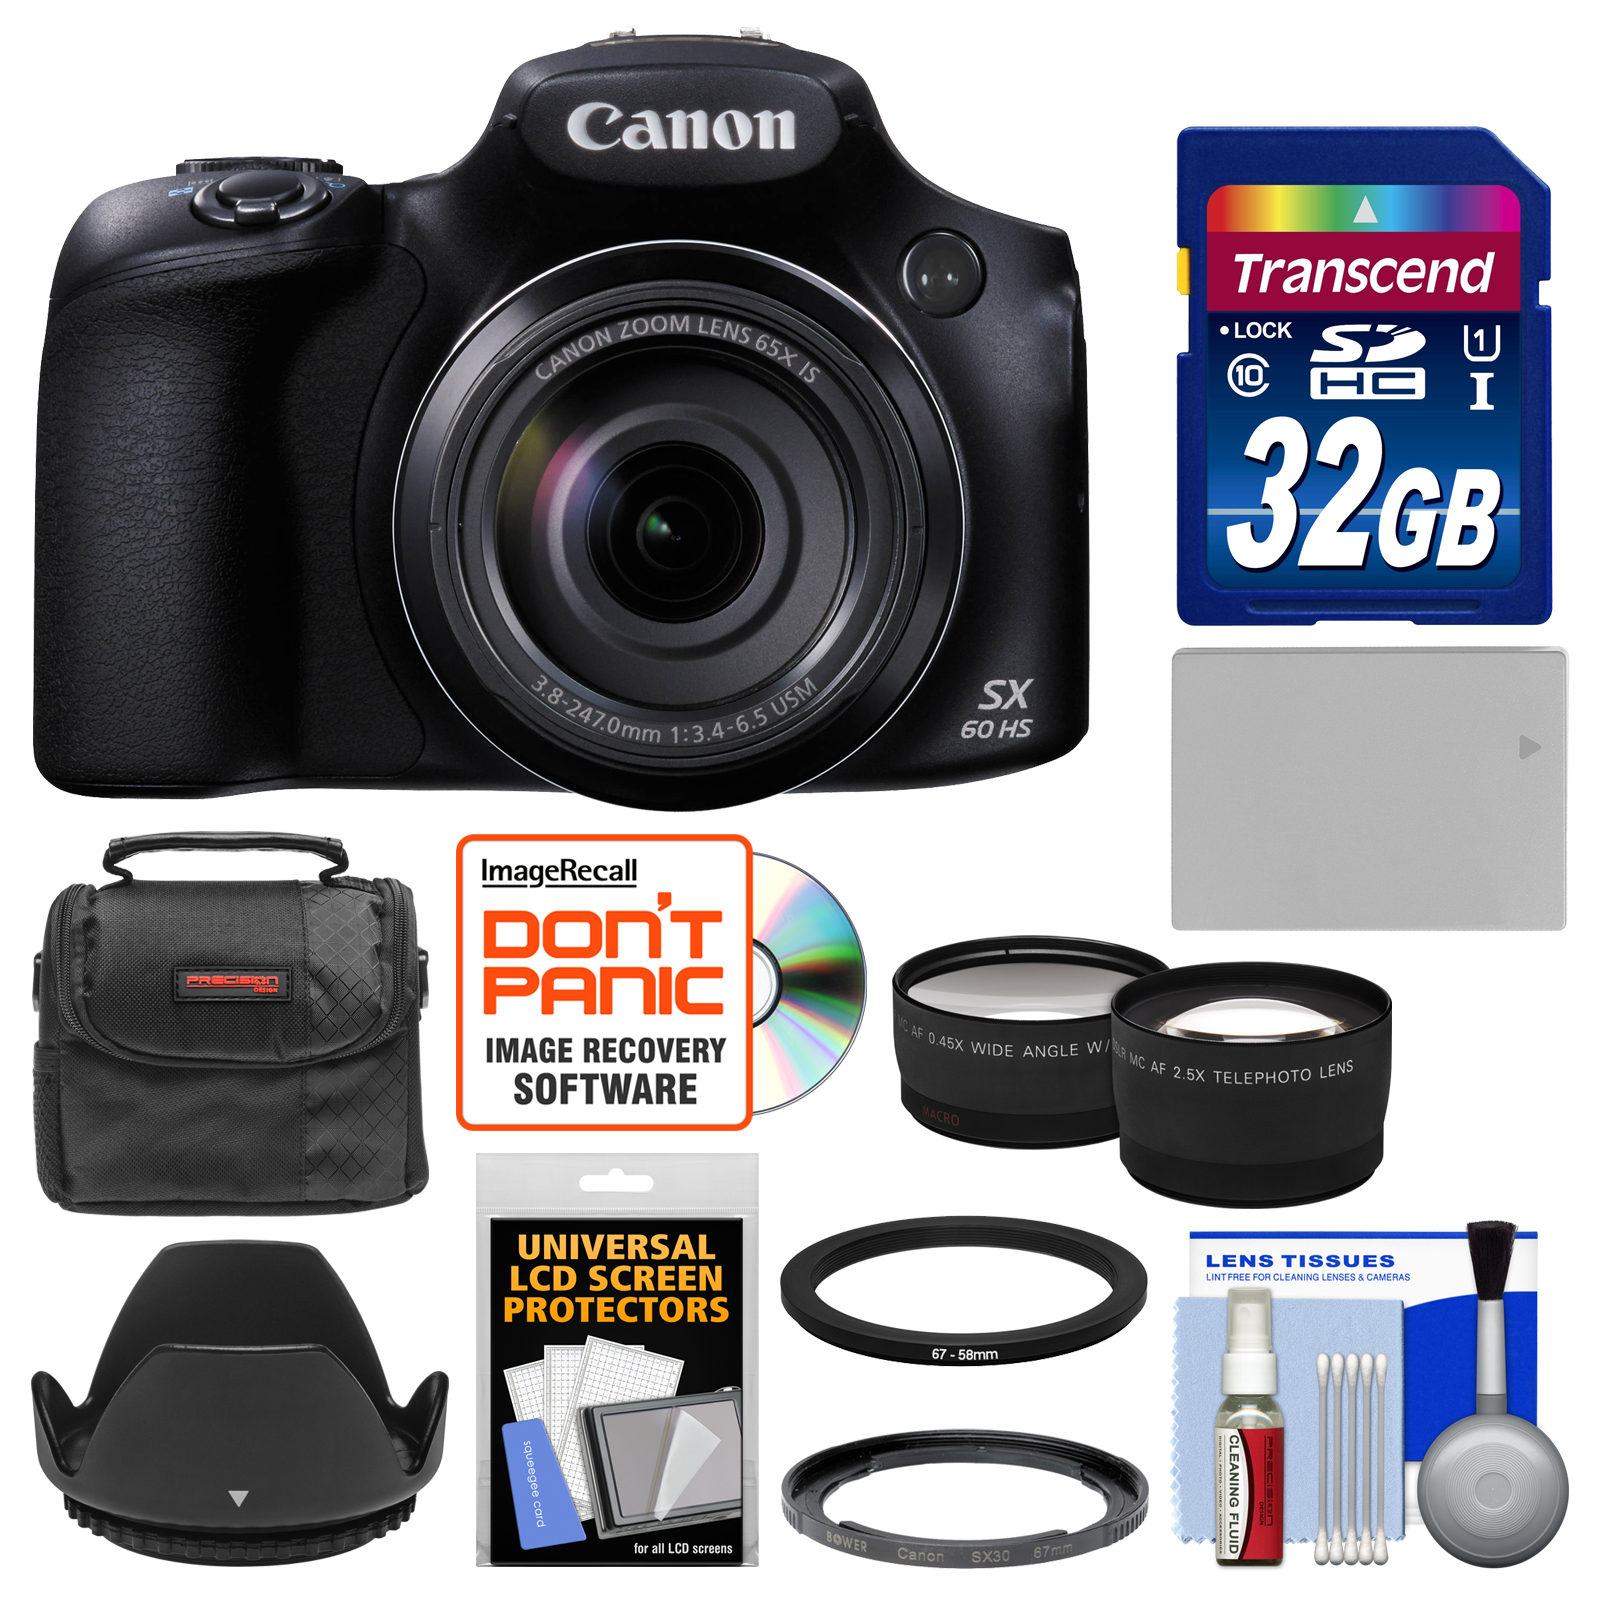 canon powershot sx60 hs wi fi digital camera with 32gb